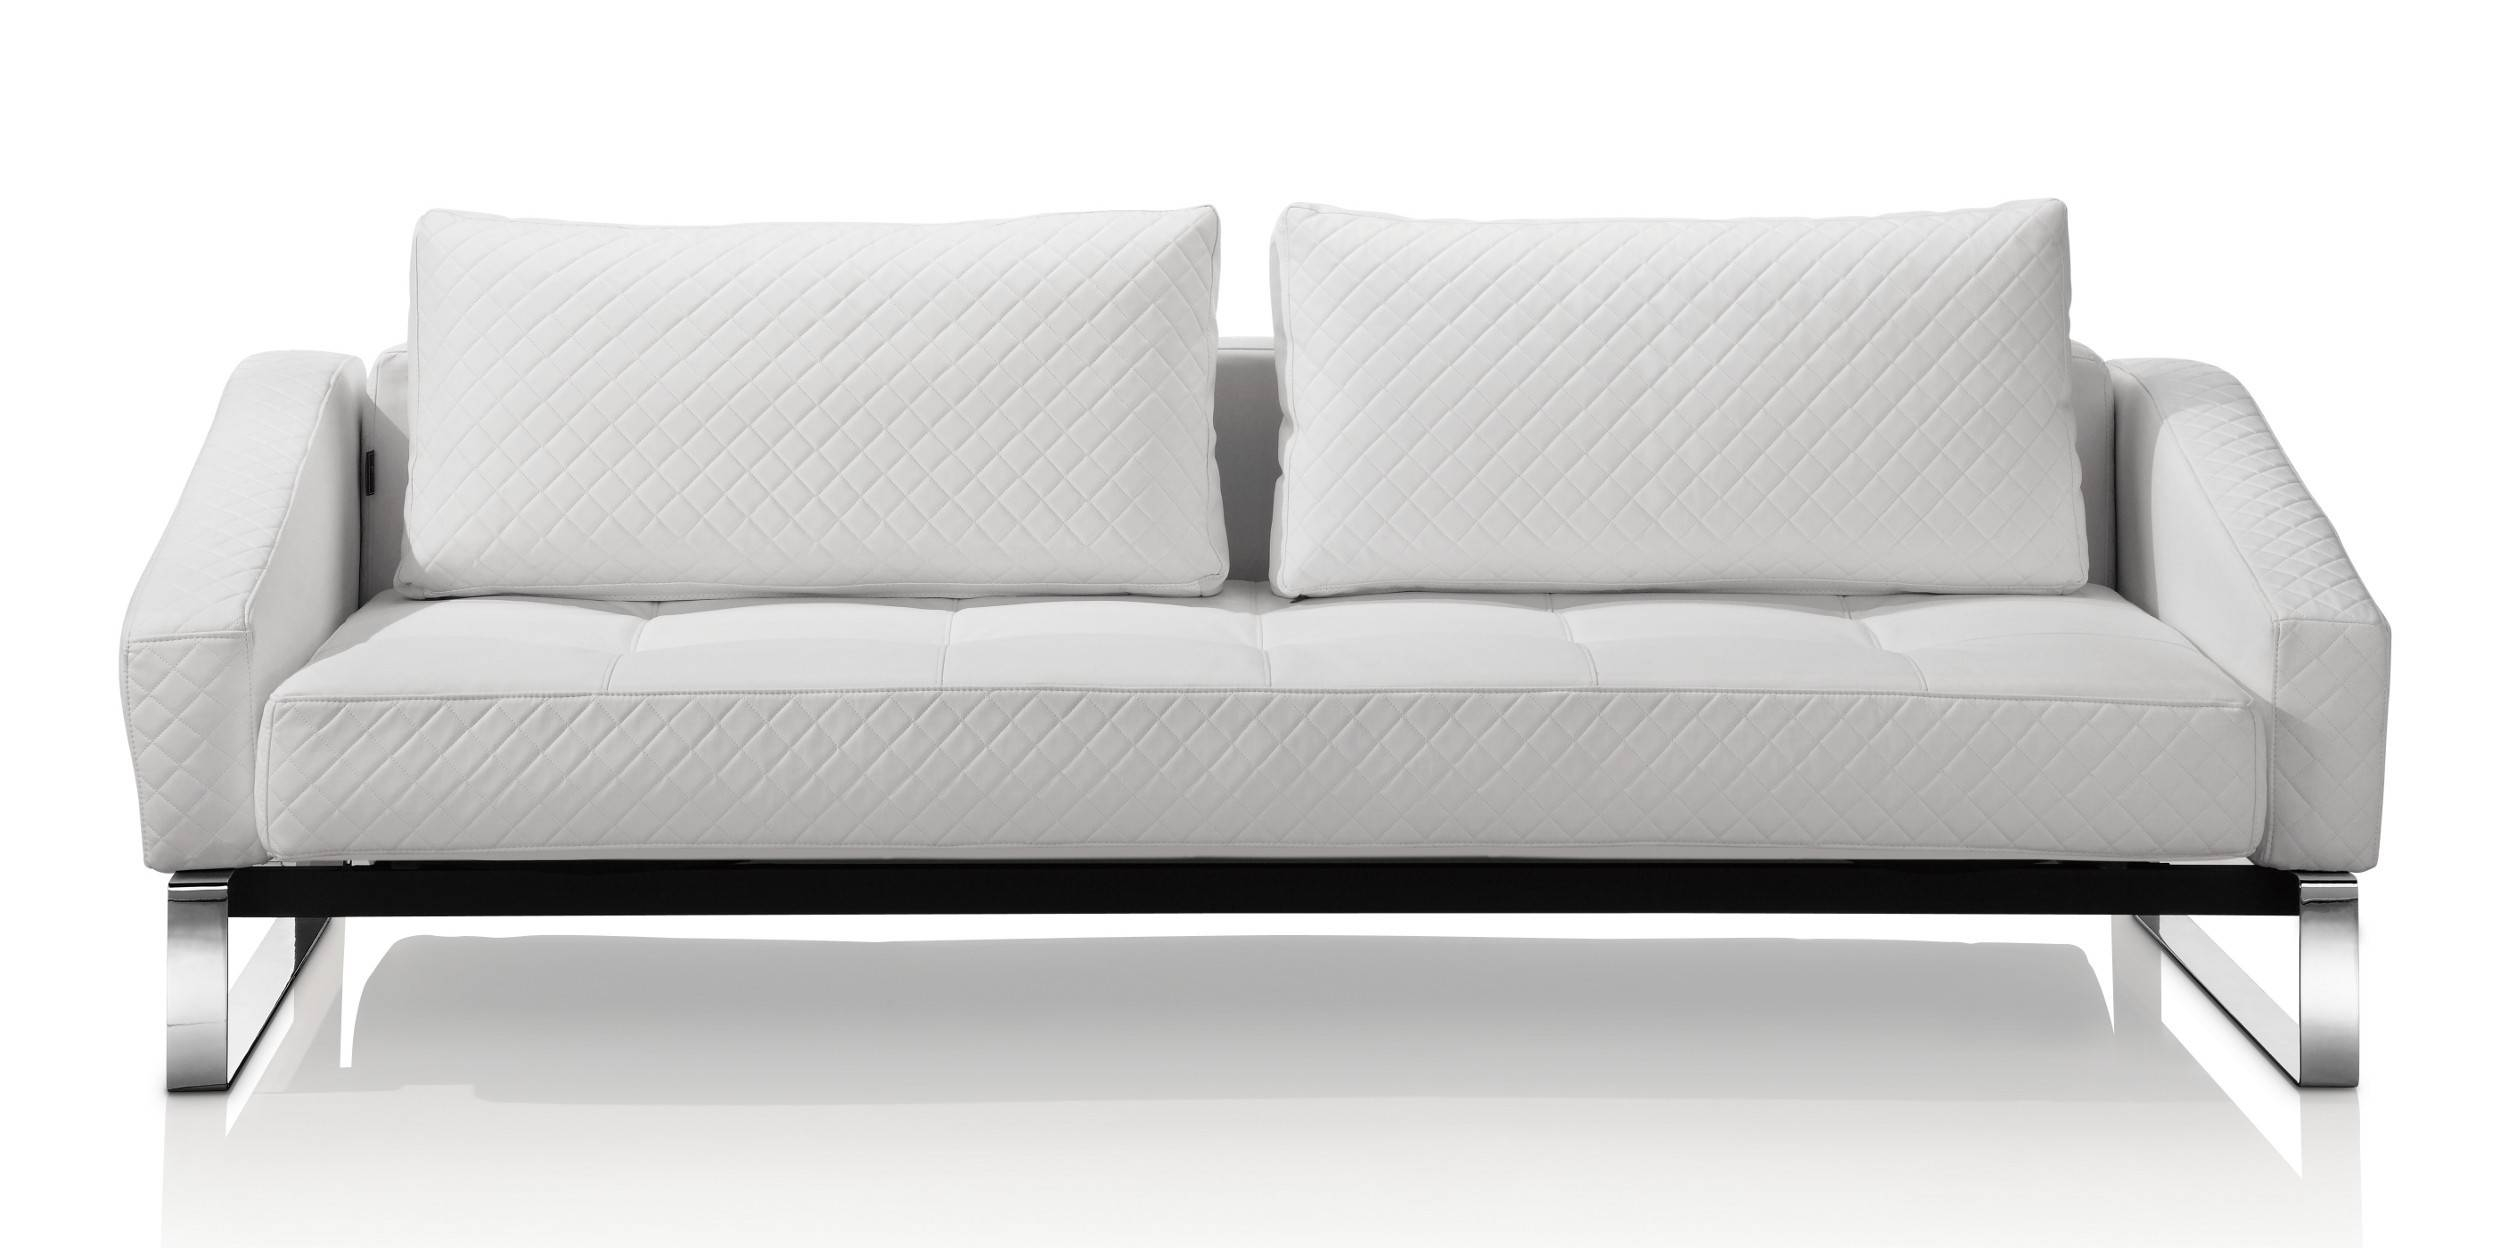 Best White Fabric Sofa 21 On Sofas And Couches Set With White with White Fabric Sofas (Image 7 of 30)